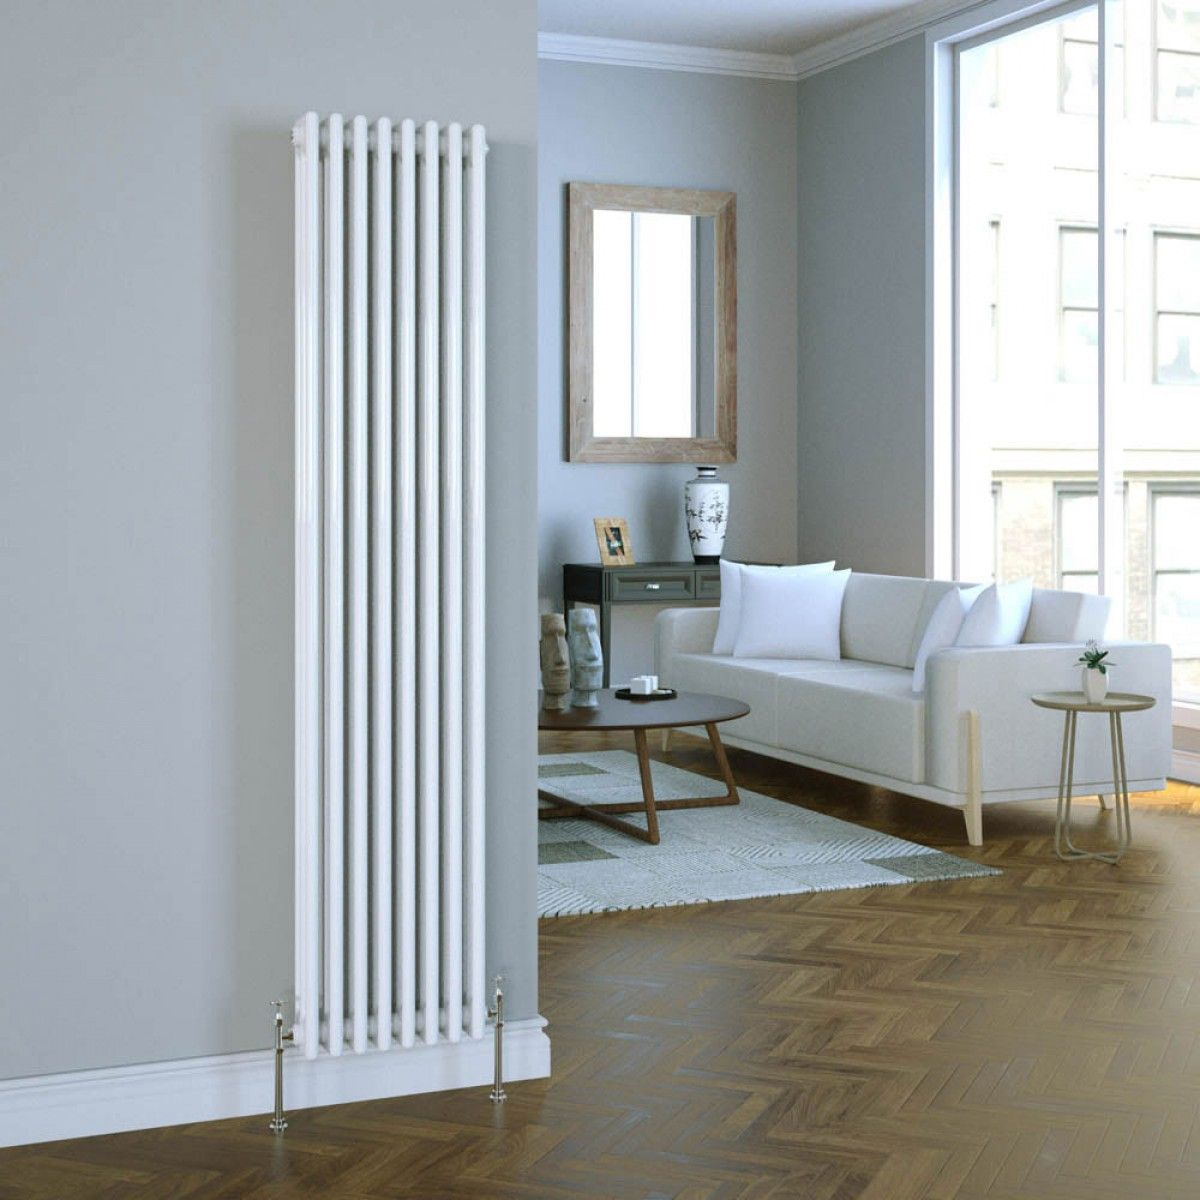 With prices starting at around £189, the Brenton Vertical Column ...